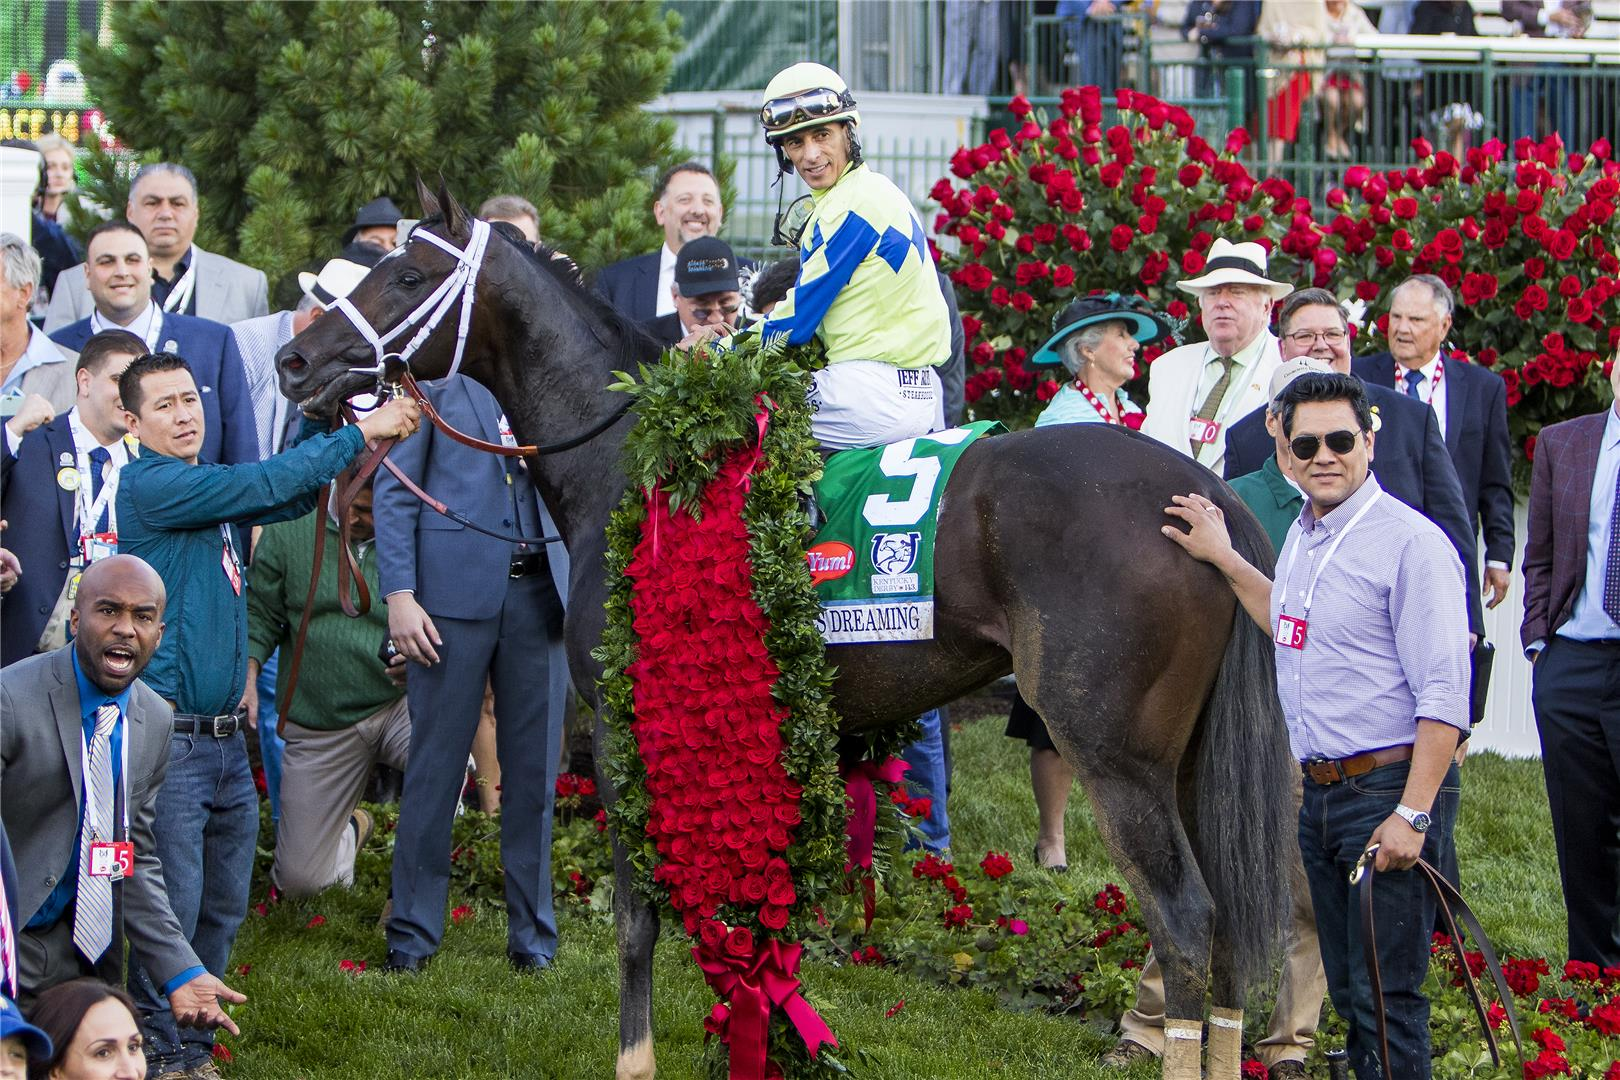 Kentucky Derby winner Always Dreaming to stand at WinStar upon retirement title=